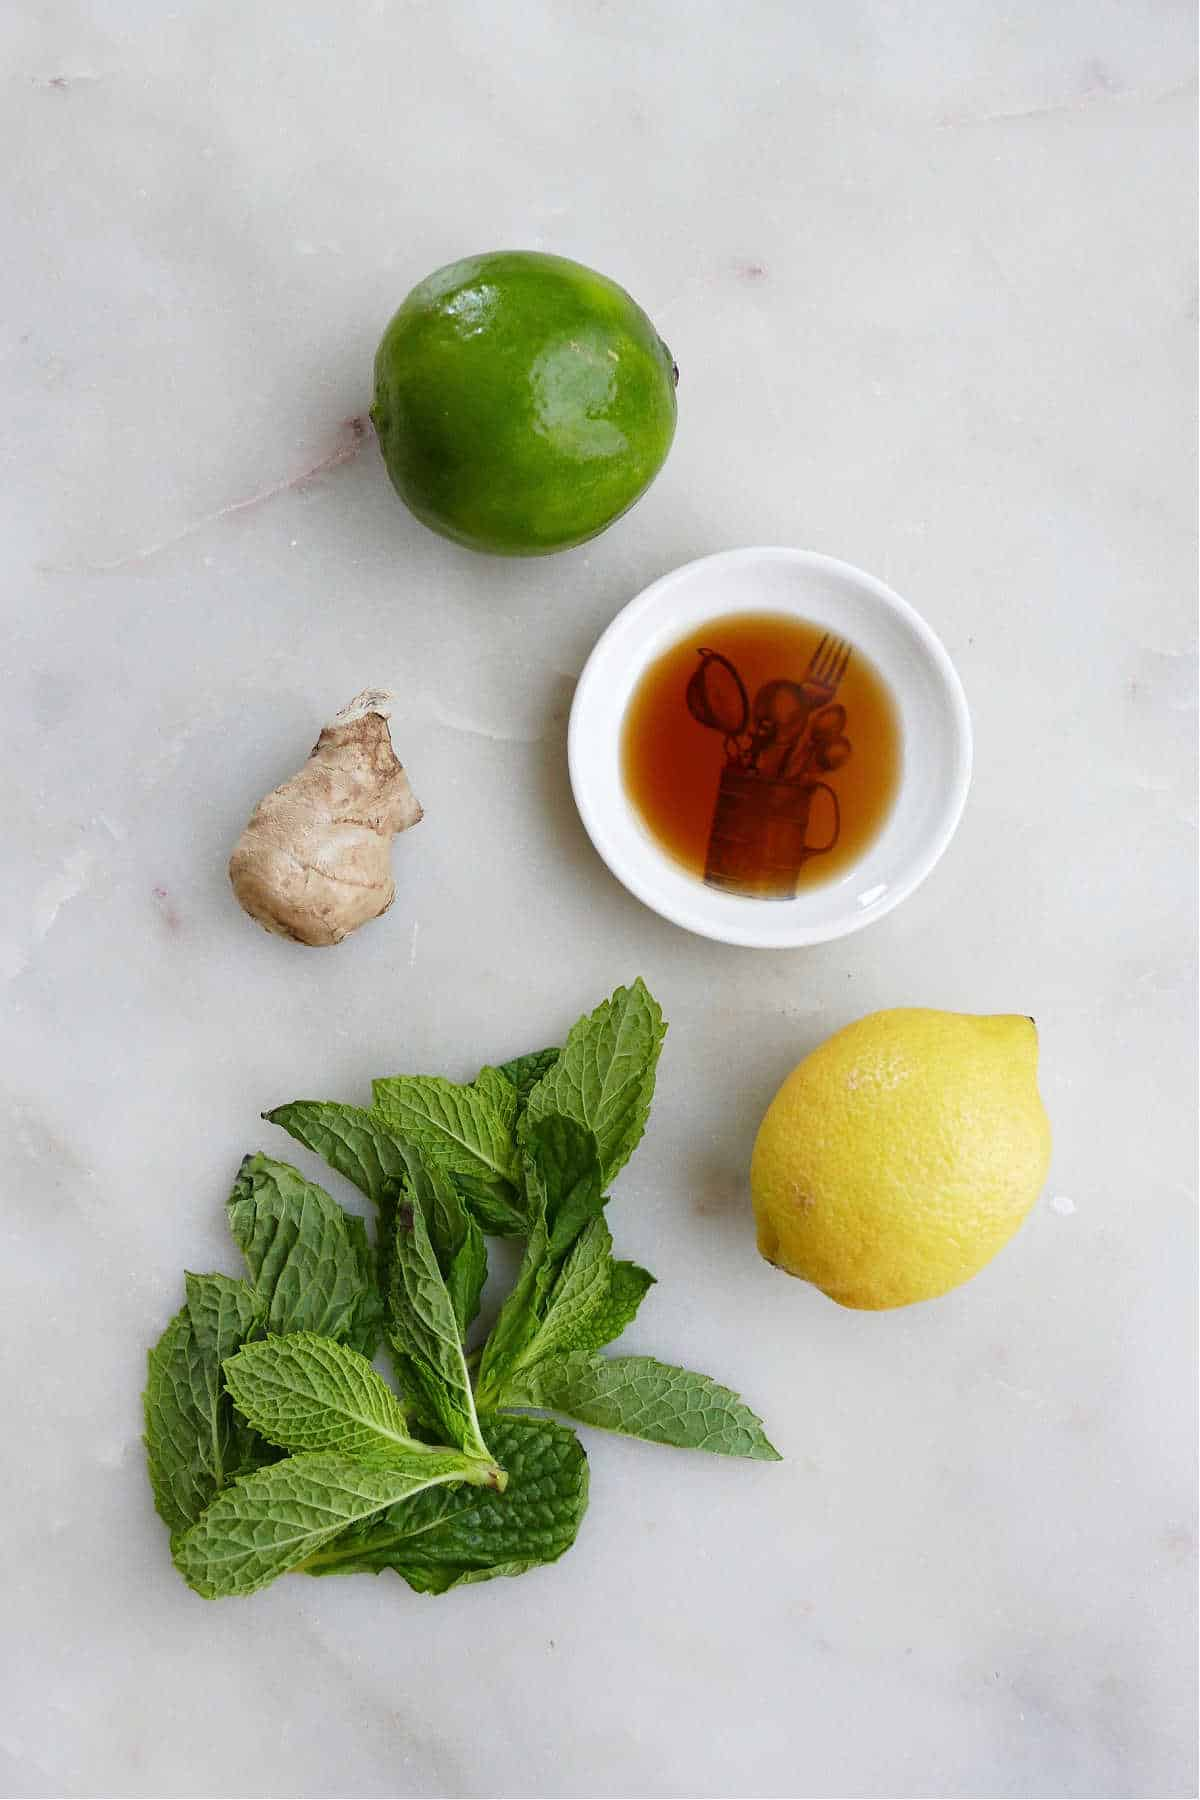 lime, lemon, vanilla, ginger, and mint leaves spread out on a counter